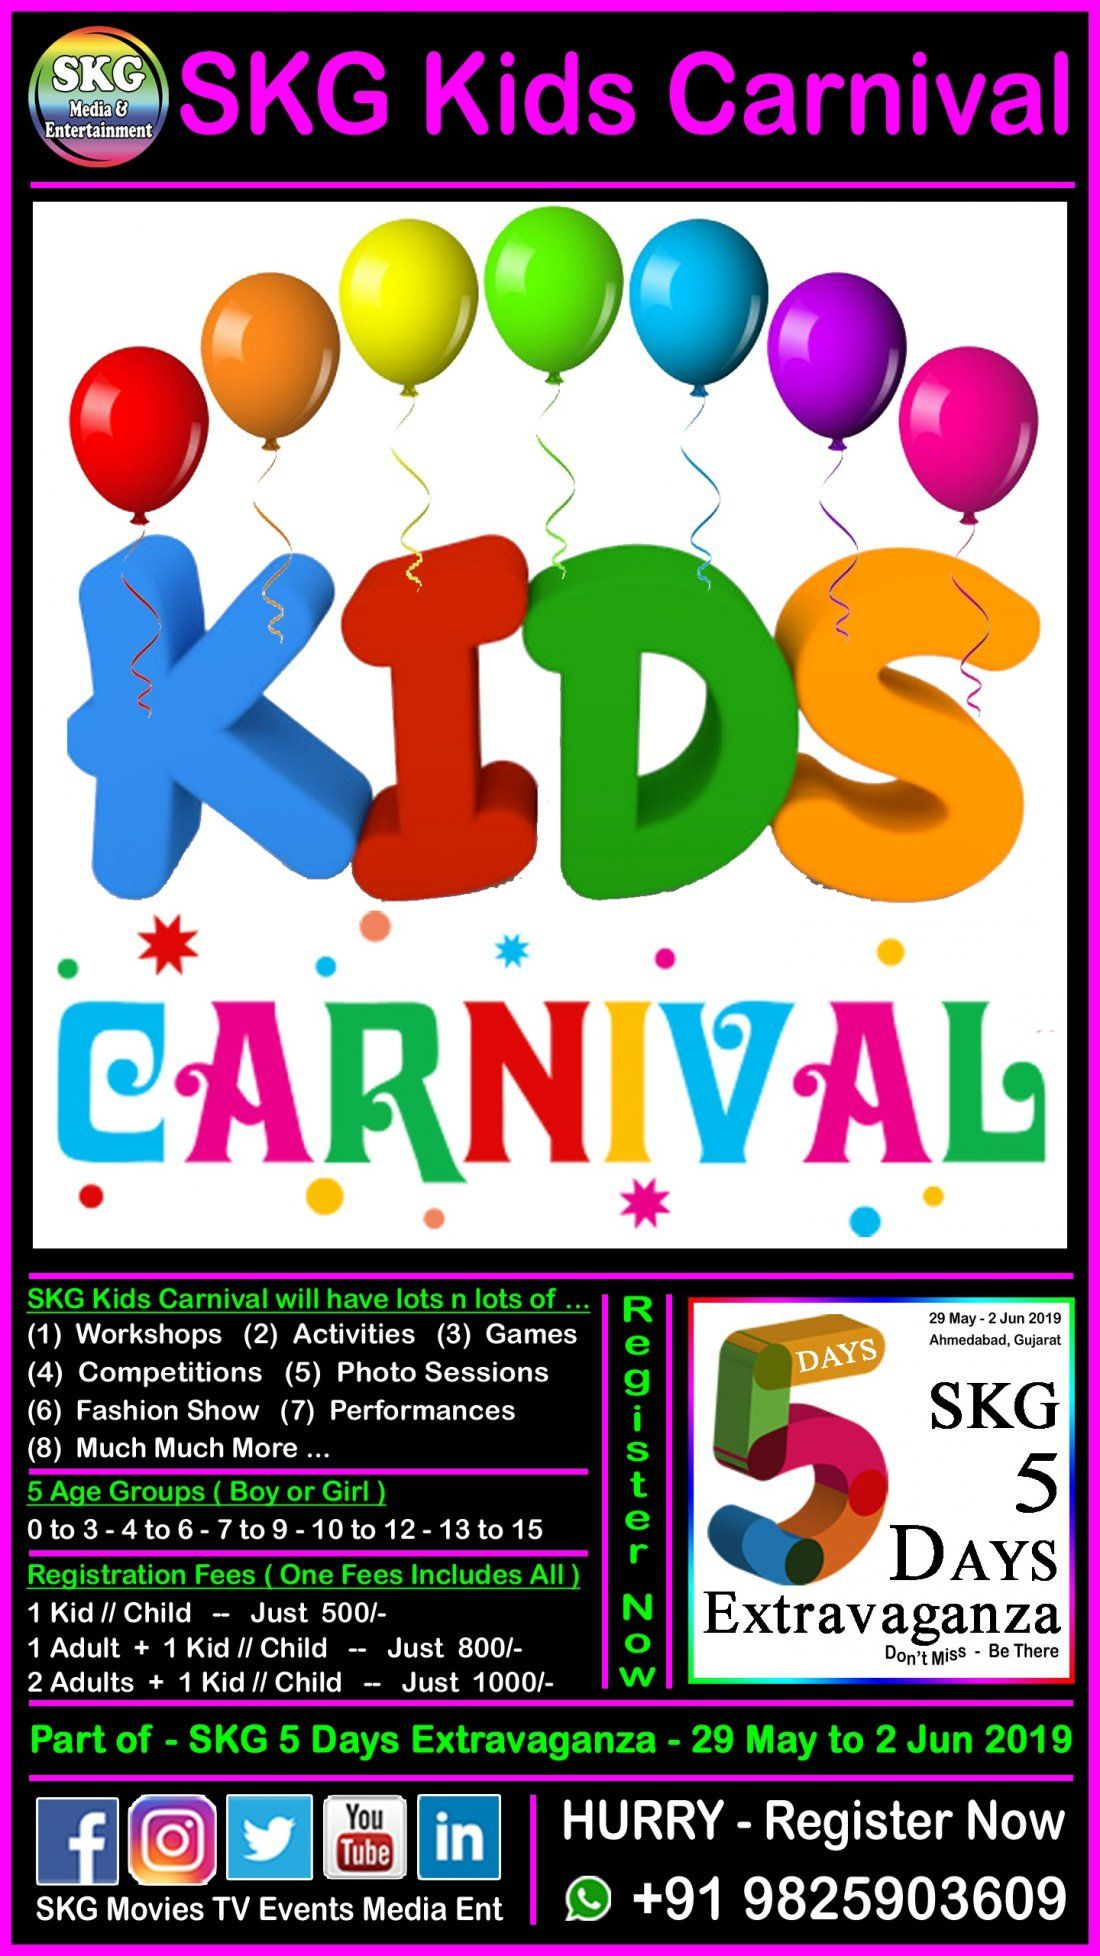 SKG Kids Carnival - Part of SKG 5 Days Extravaganza